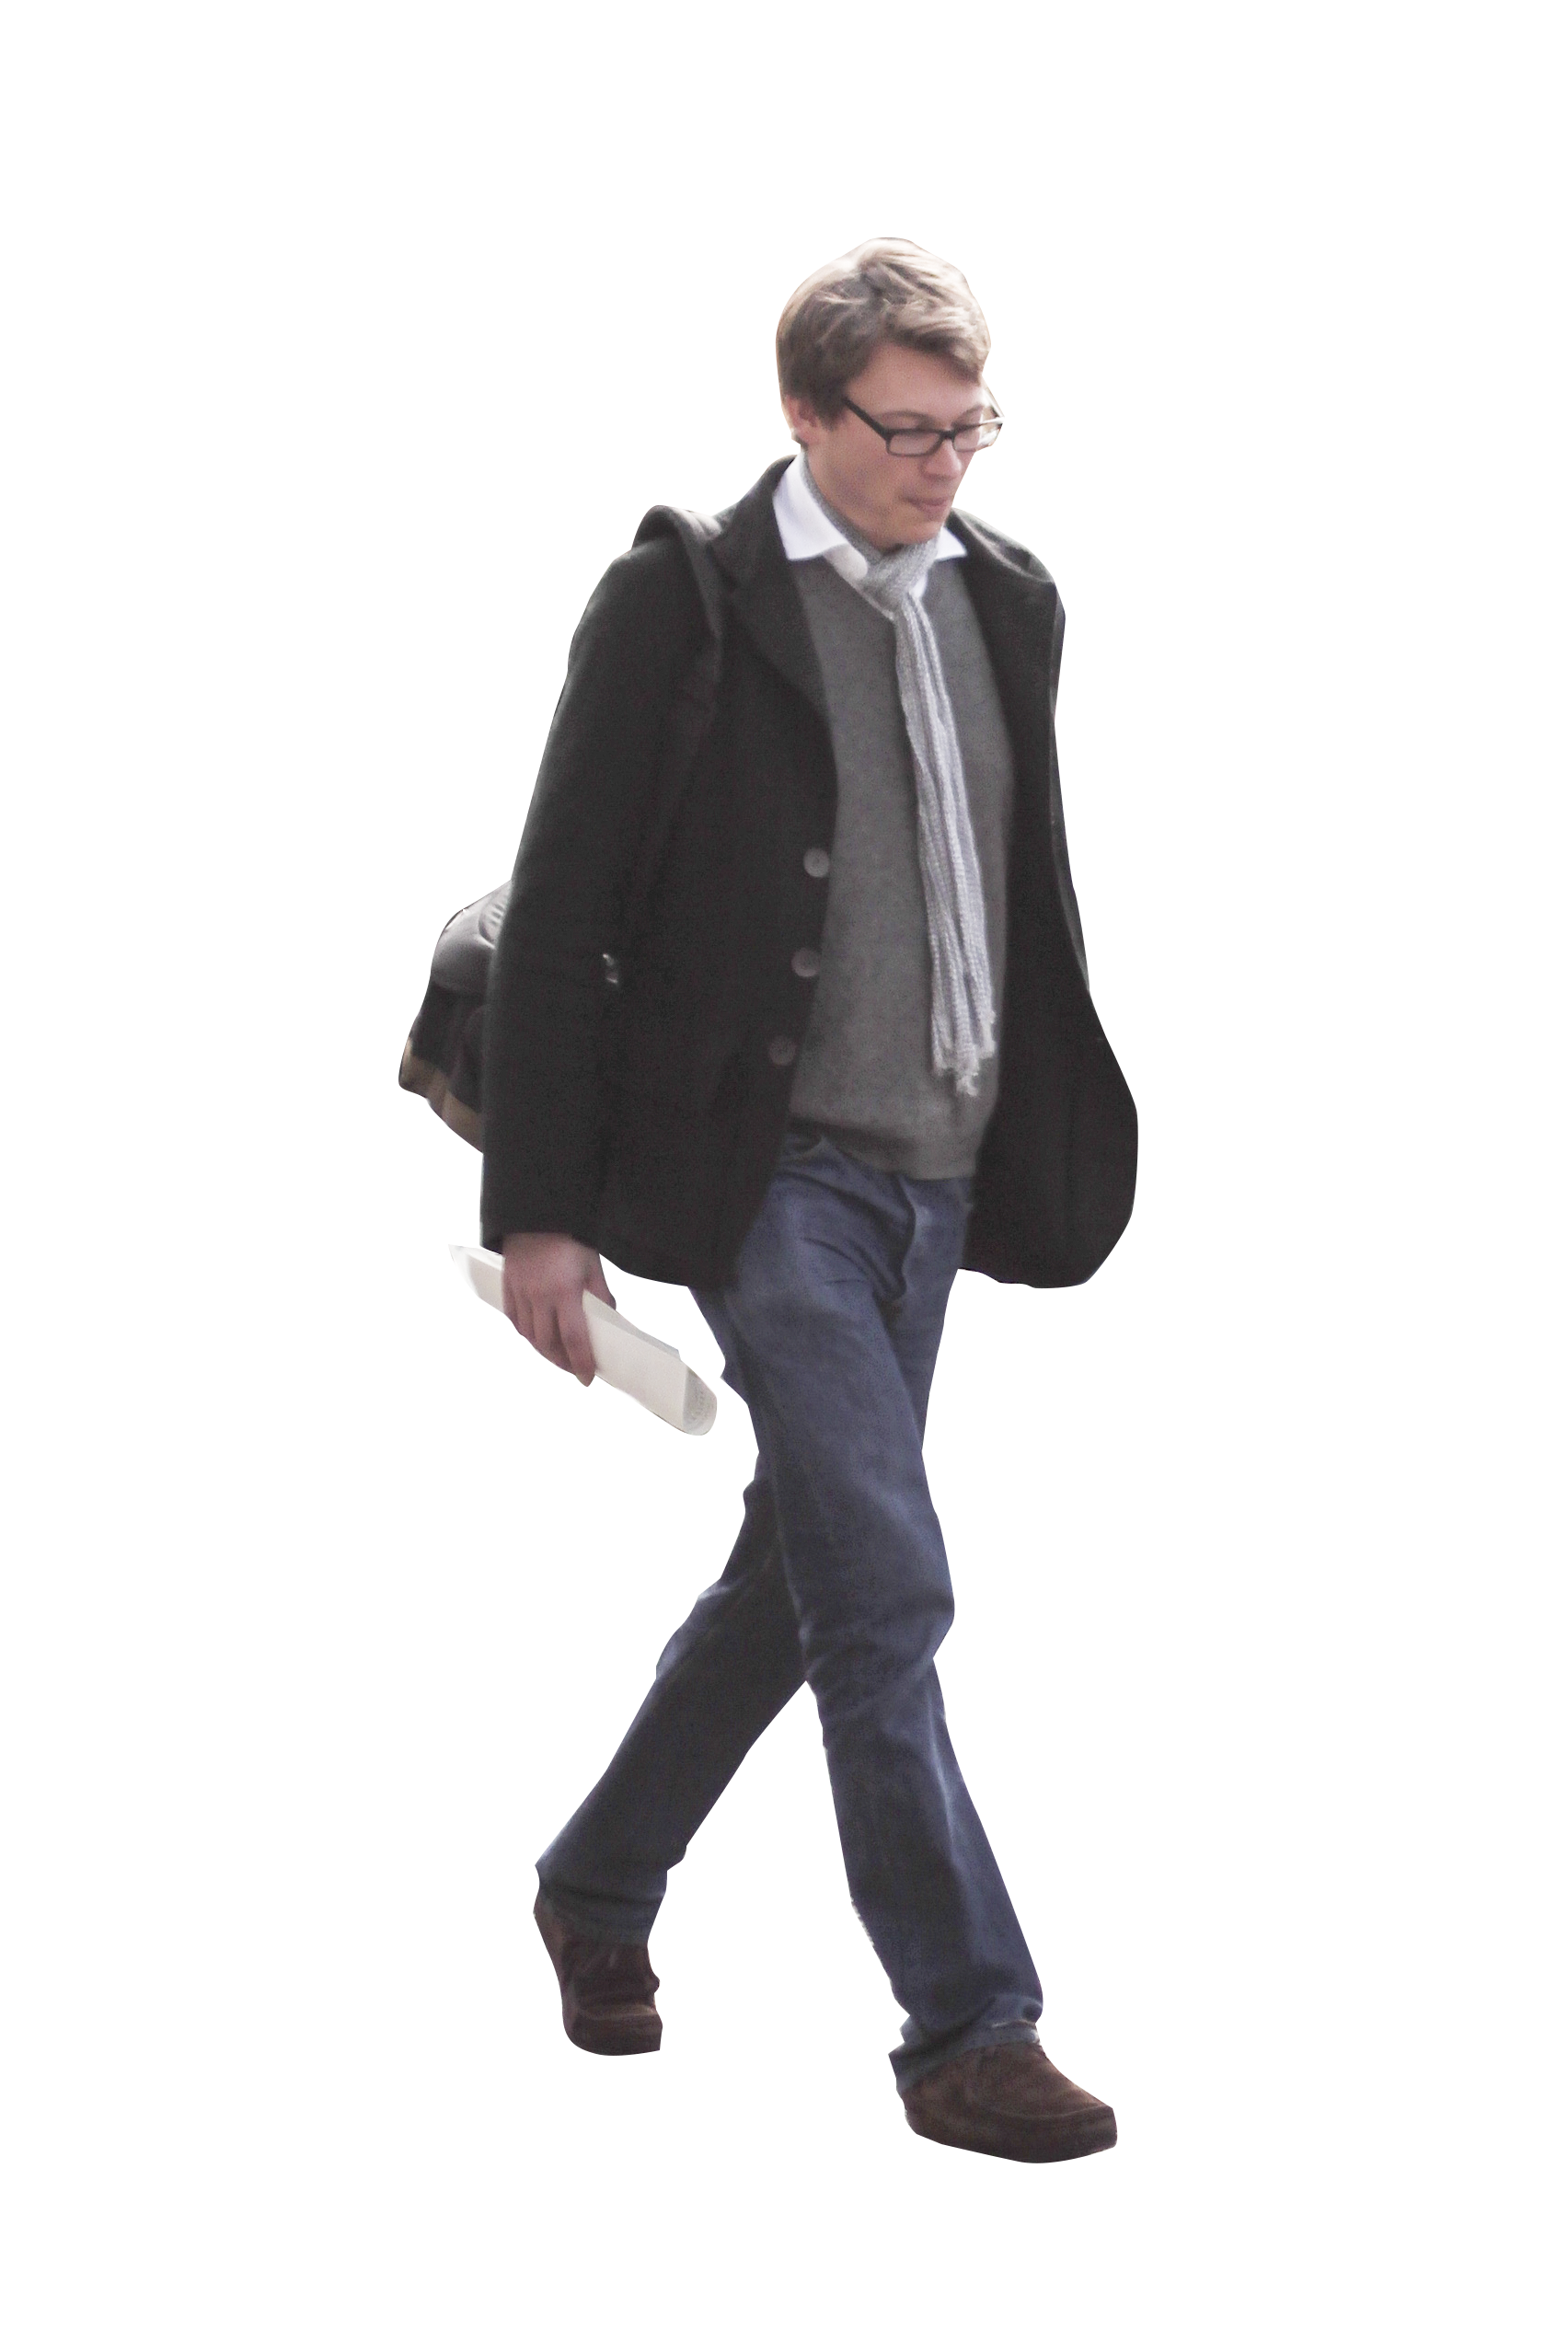 Person walking png. Transparent images pluspng pluspngcom